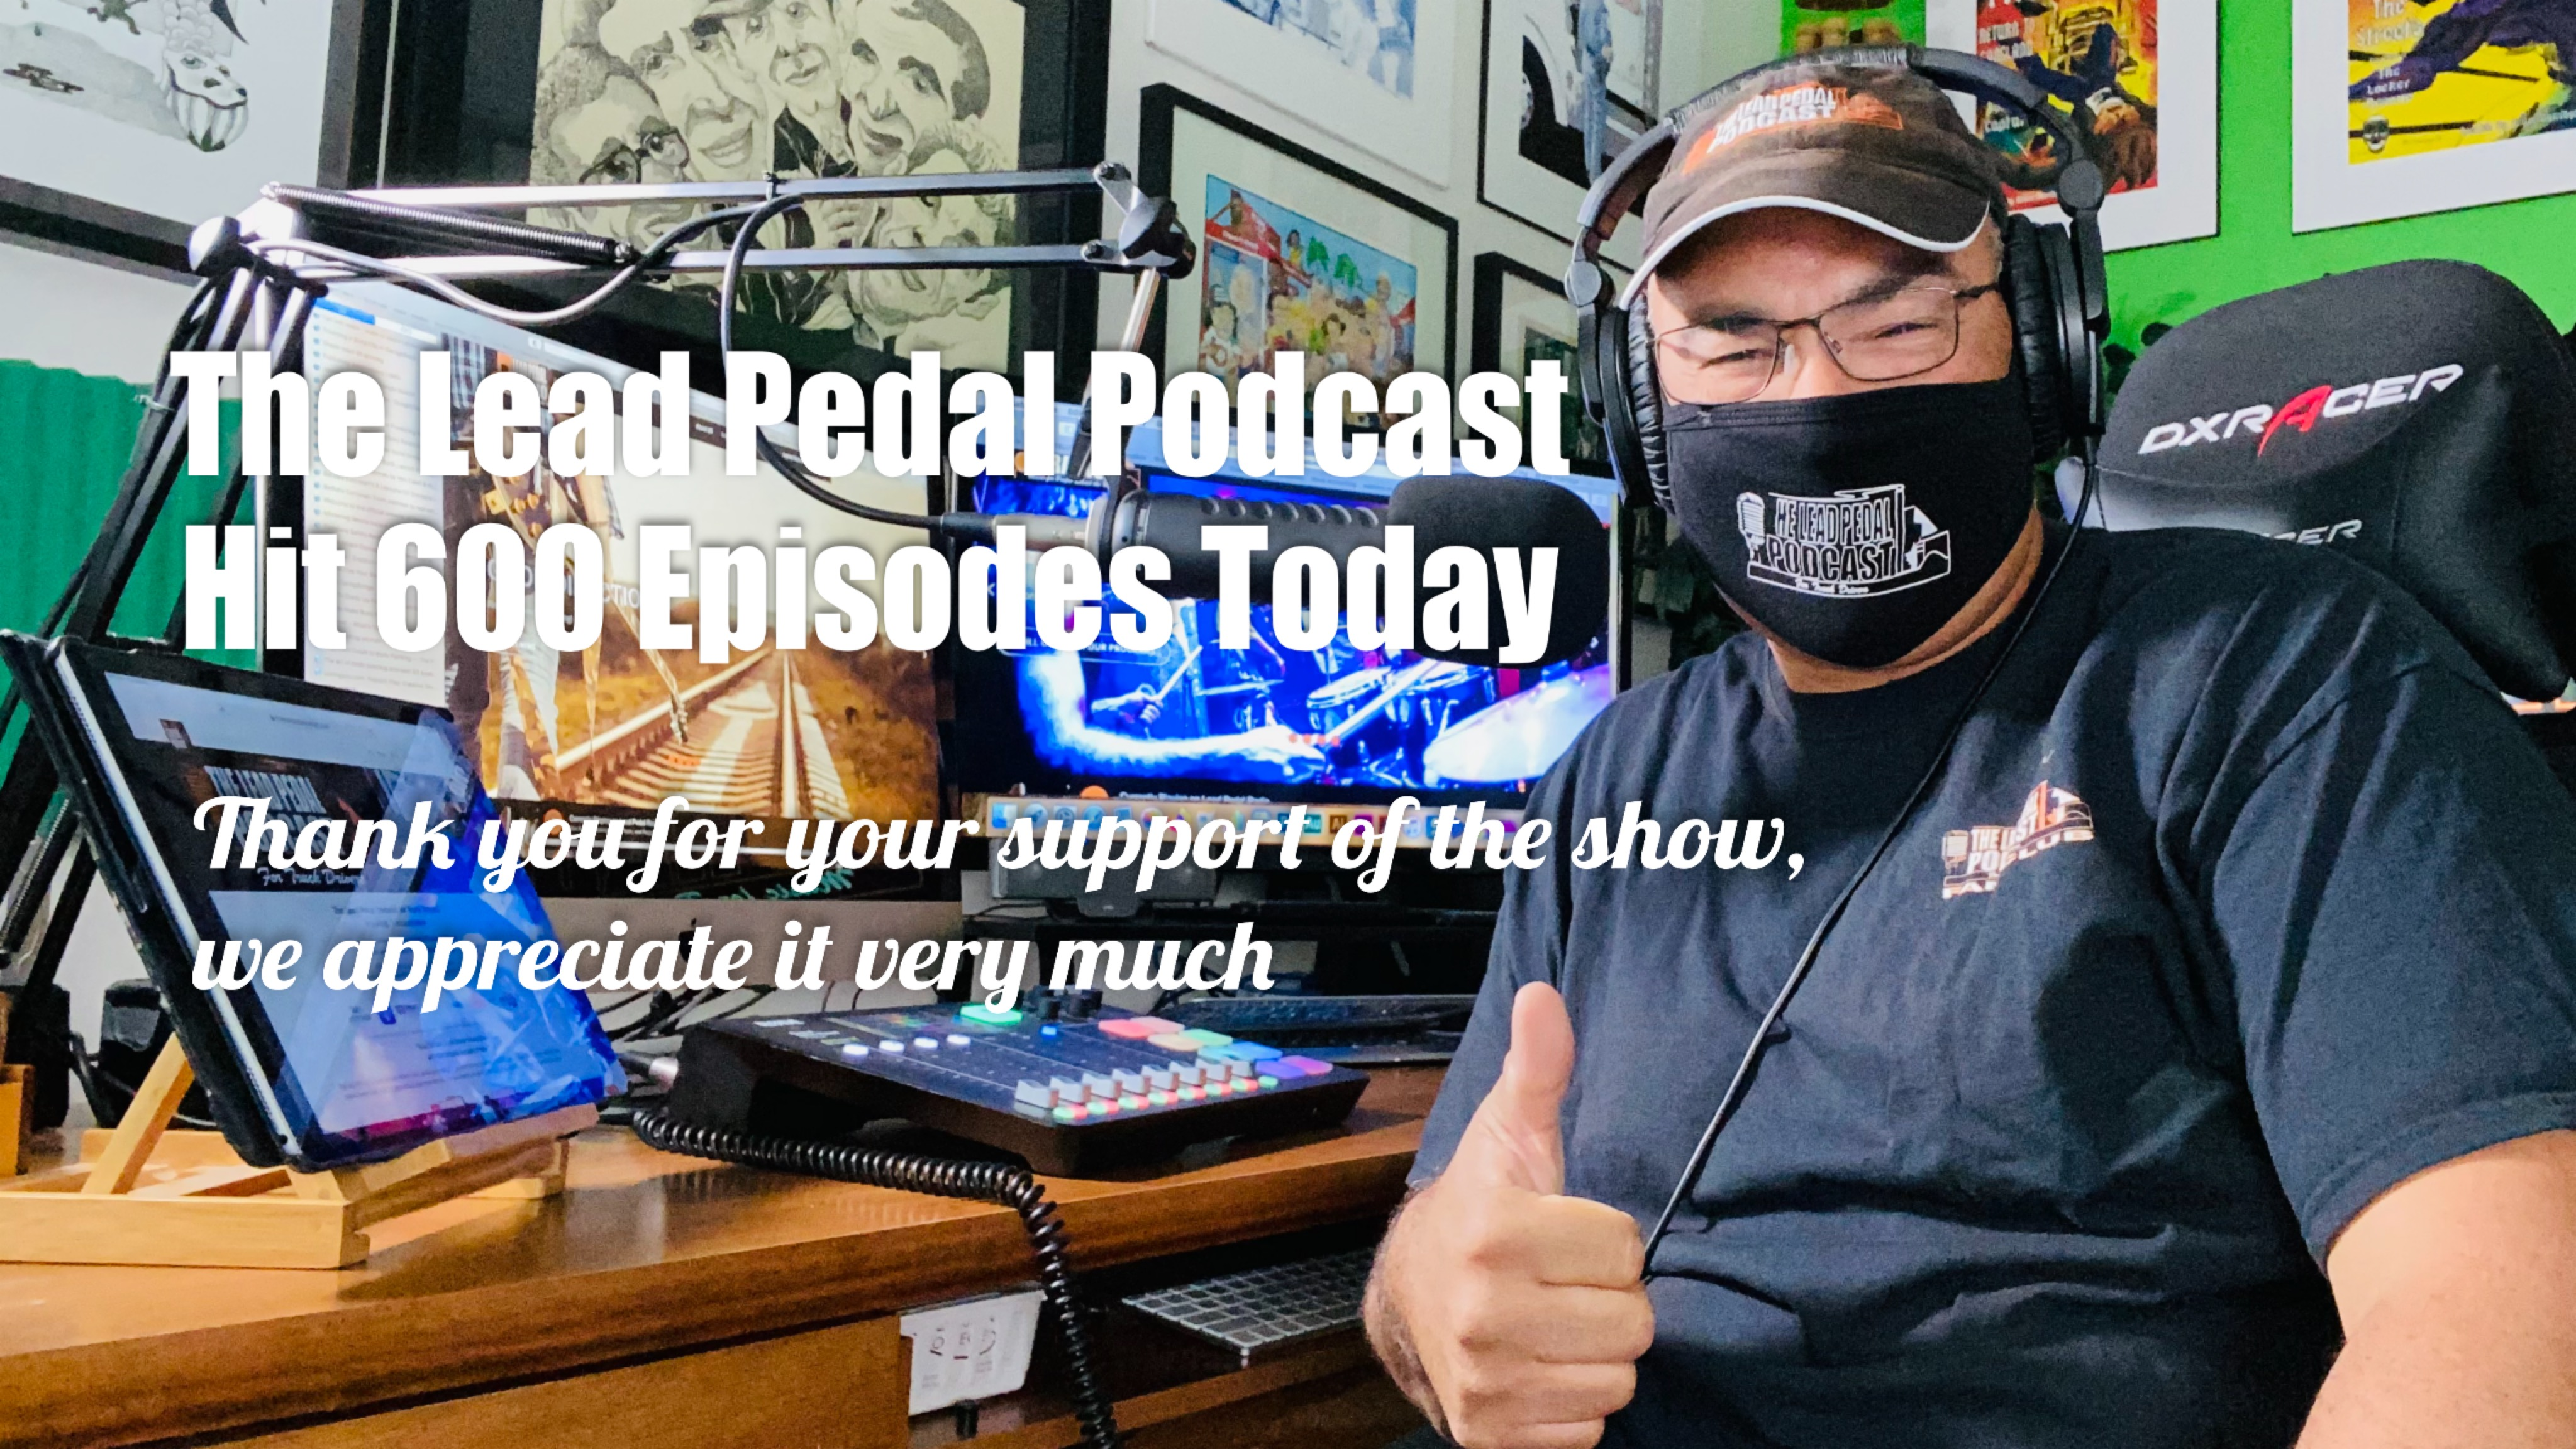 The Lead Pedal Podcast for Truck Drivers Celebrates 600 Episodes